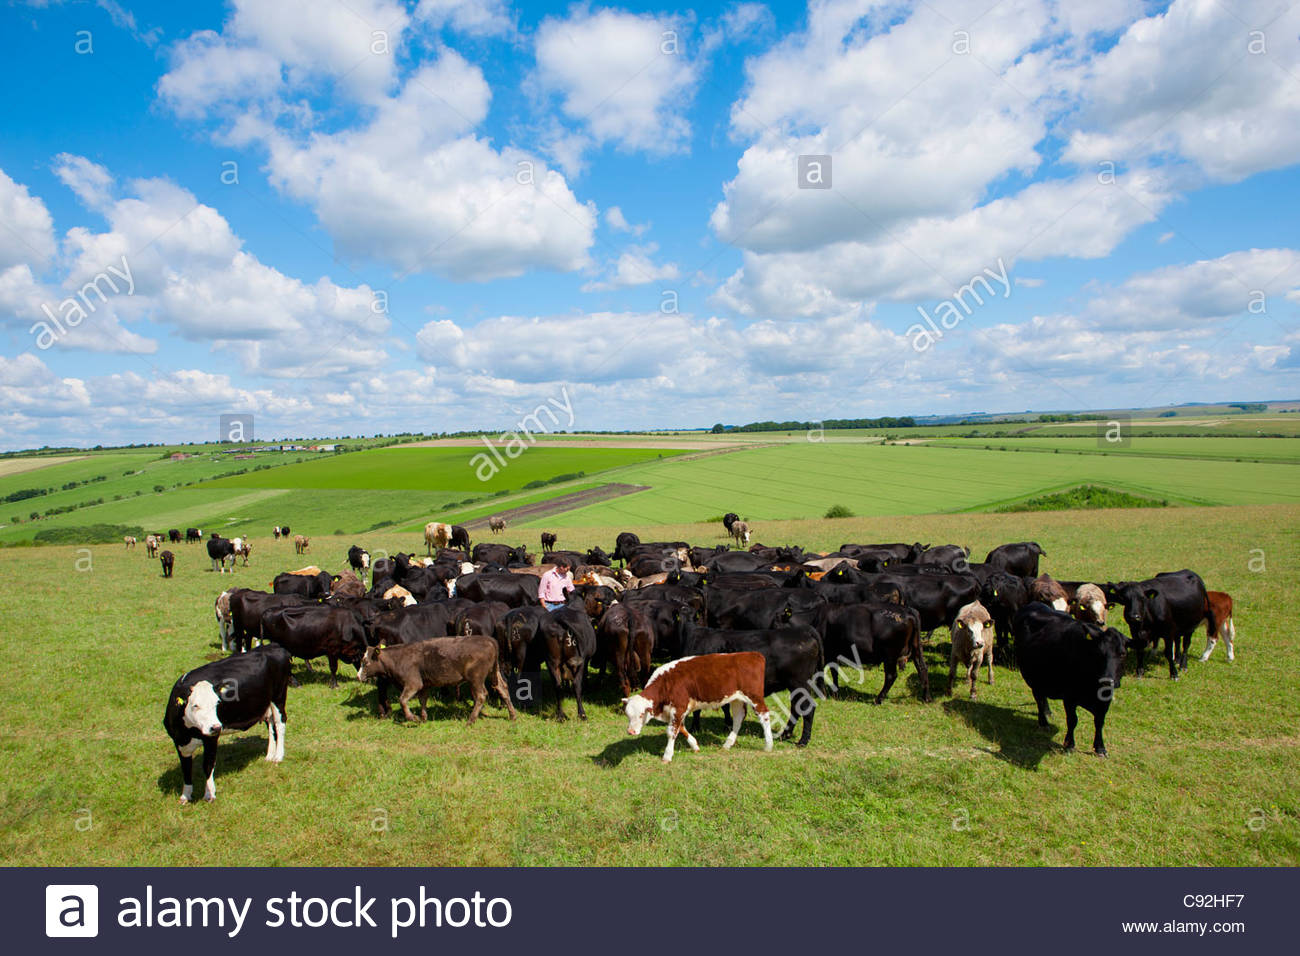 Farmer among cattle herd in sunny rural field - Stock Image